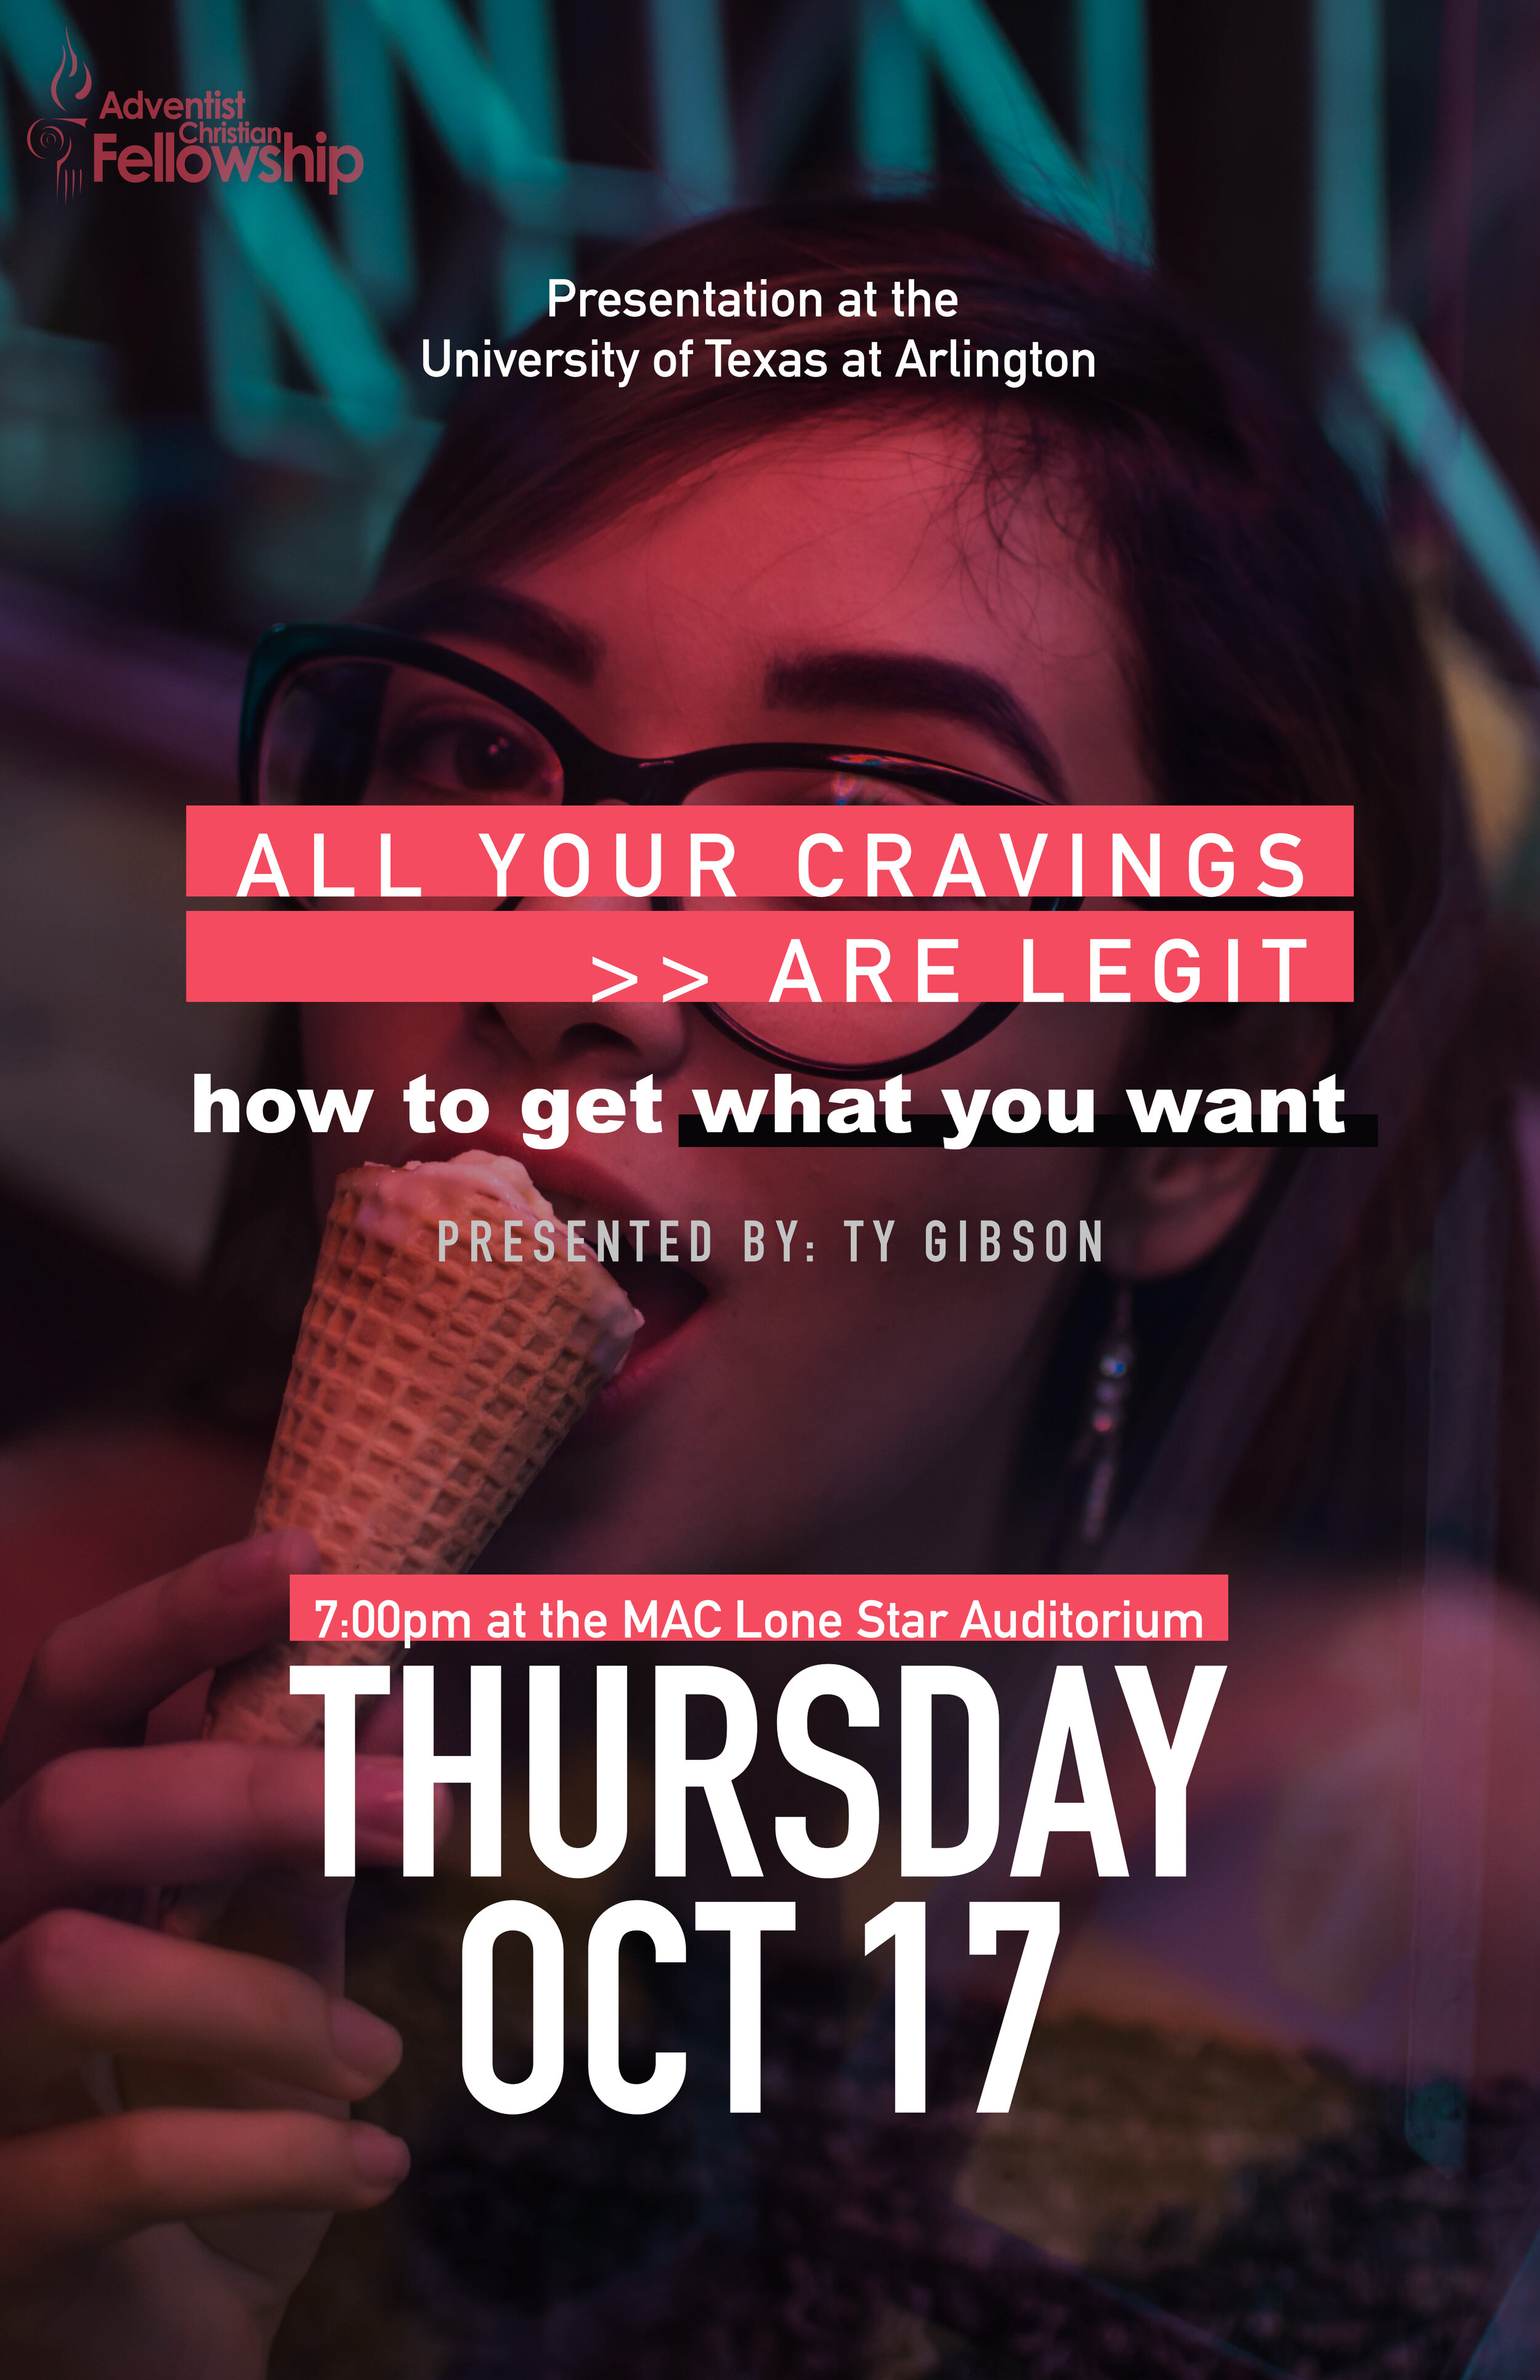 """How To Get What You Want [All Your Cravings are Legit] October 17, Thursday, 7:00PM  Maverick Activity Center [MAC] – Lone Star Auditorium, University of Texas Arlington 500 West Nedderman Drive, Arlington, TX 76013  Free event registration:  http://bit.ly/acfoct17  For free parking:  http://bit.ly/eventParking19  Facebook:  https://www.facebook.com/events/1132500343805789/   If you are wondering how to conquer your spiritual thirst in the 21st Century, this is the talk to help you get what you want. Presented by Ty Gibson. Collegians, graduate students, and young adults are especially invited to this free event.   Ty Gibson : Raised with a purely secular worldview and having witnessed evil and suffering firsthand, Ty Gibson was completely opposed to the idea of a Supreme Being. """"If God exists,"""" he reasoned, """"He would have to be cruel to have made a world like ours."""" At age 18, Ty encountered the reality of God's existence. We humans were born in a war zone, and there are two opposing cosmic powers battling for our hearts. Love has gained the ultimate victory, but the war is still raging. Ty, co-director of Light Bearers, has committed his life to sharing the truth of God's character with as many people as he can."""